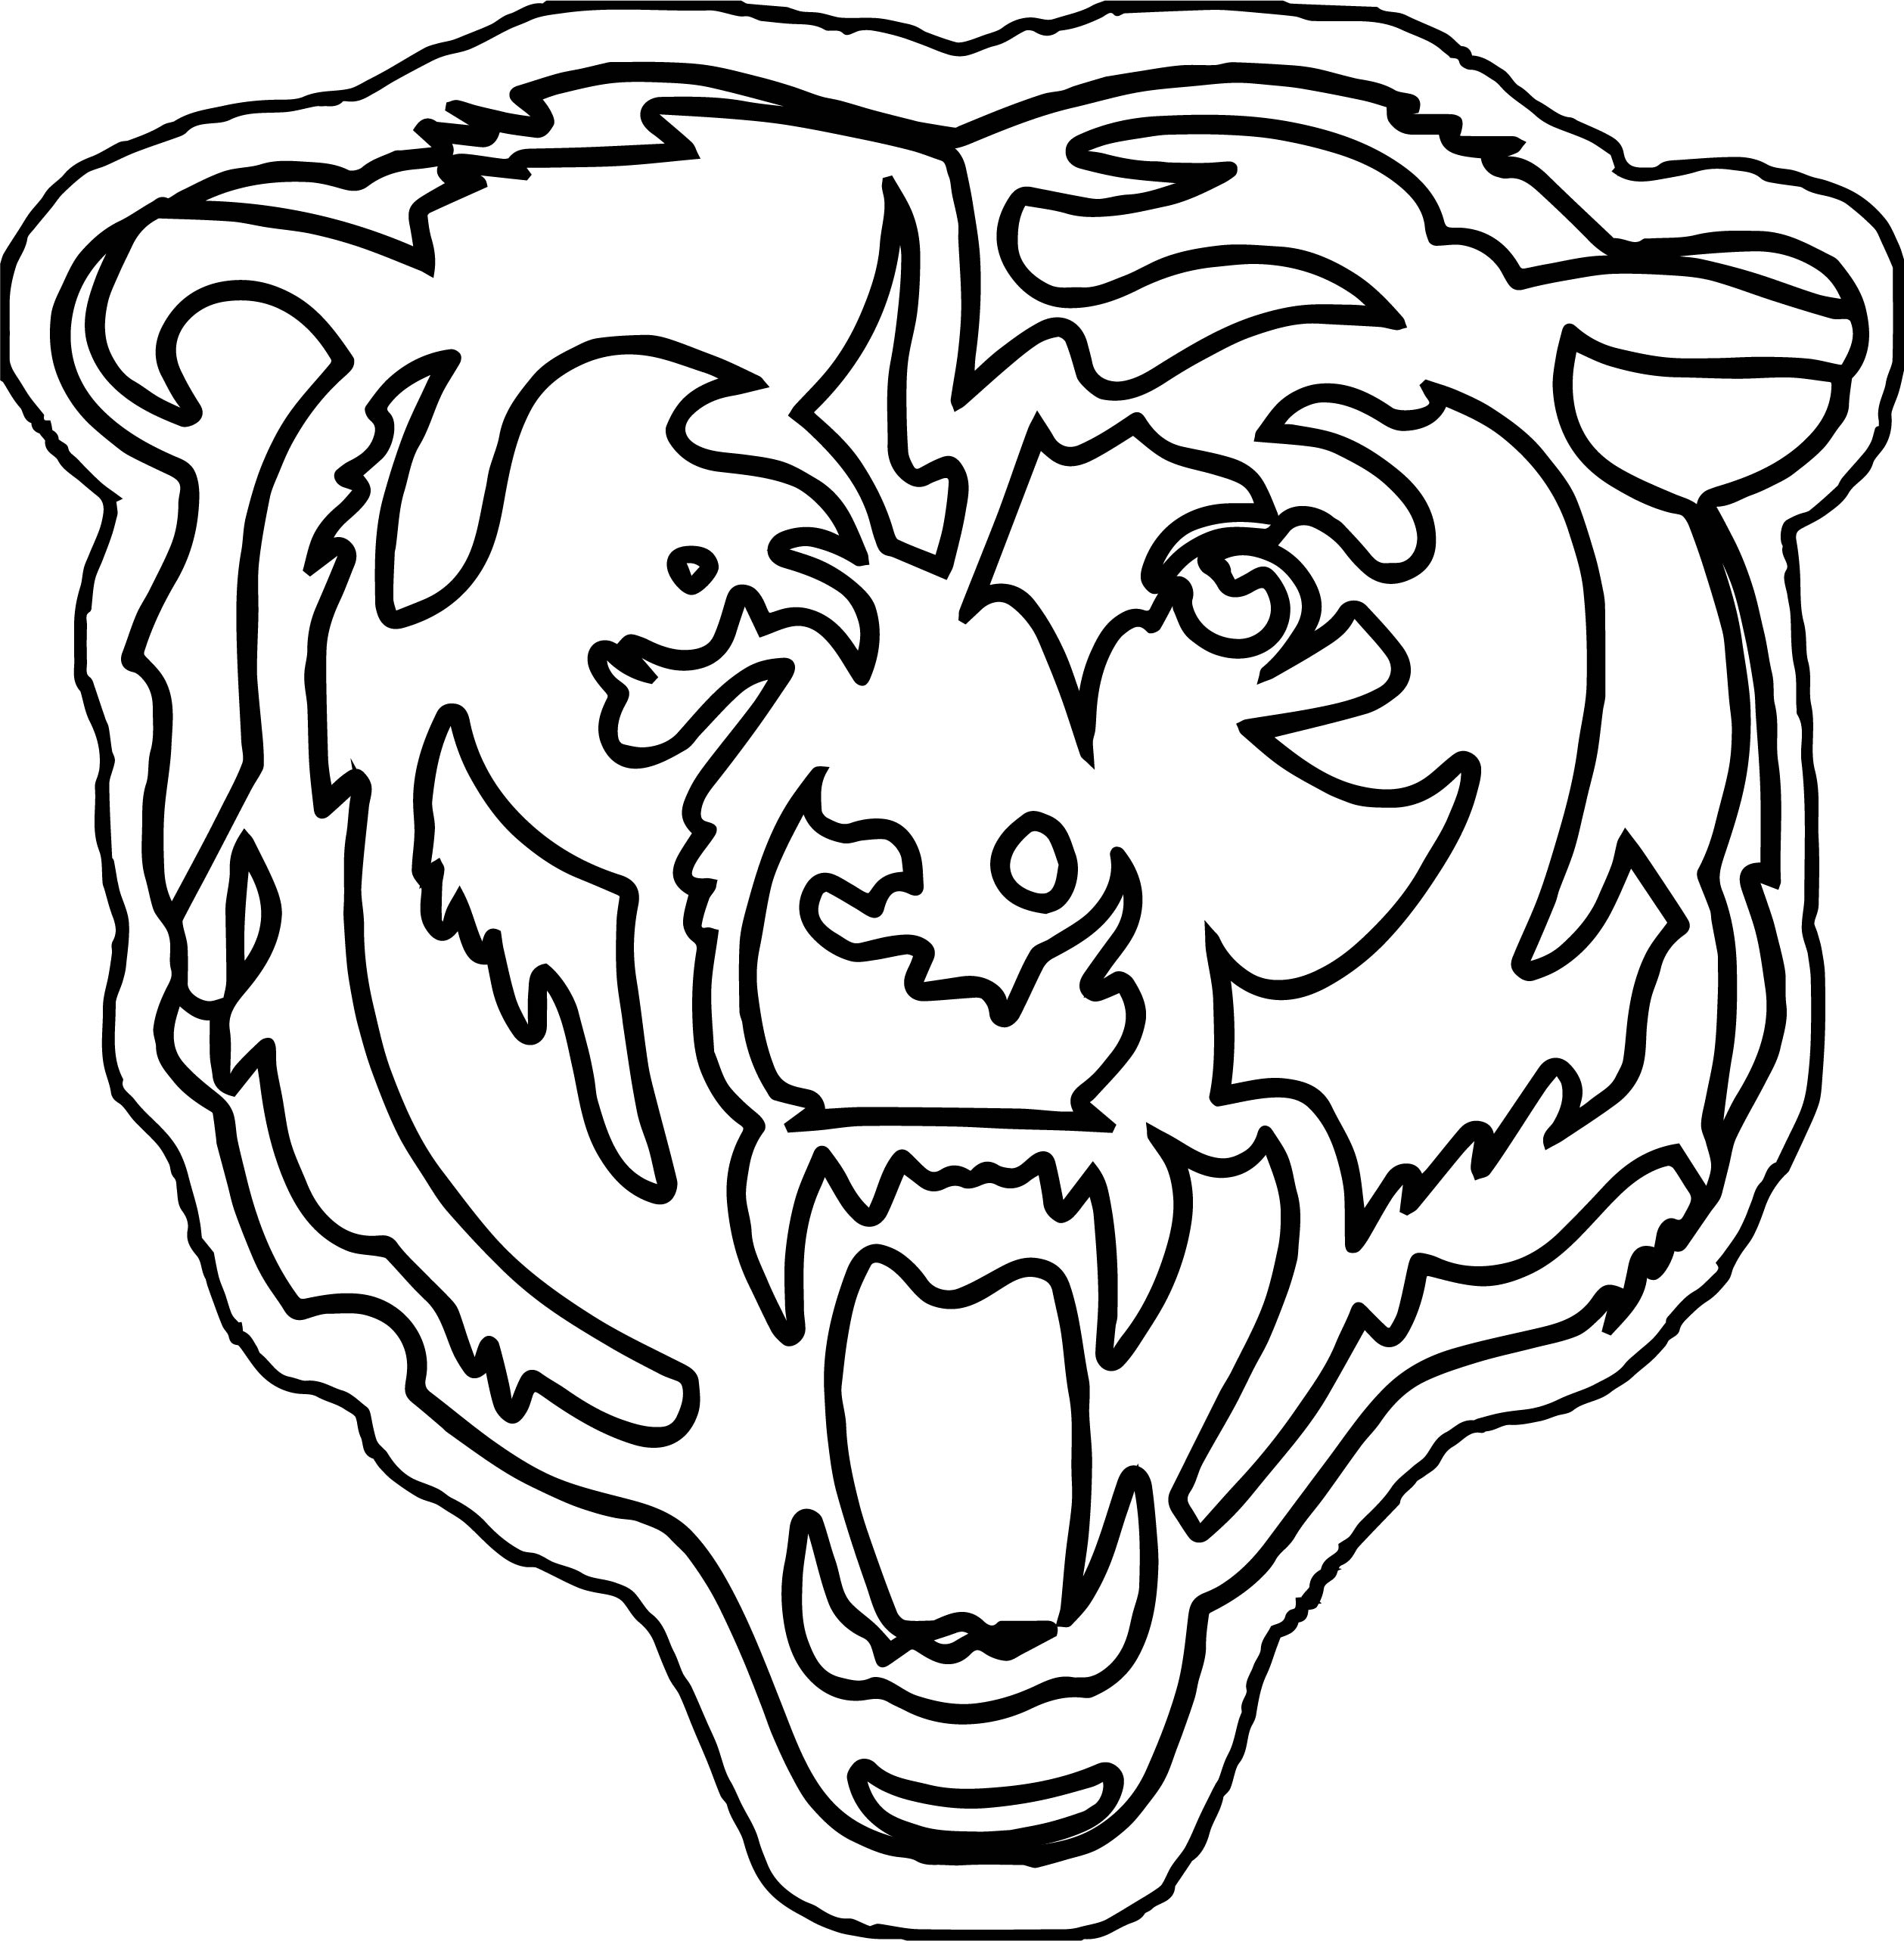 2517x2566 Bear Outline Coloring Pages Wecoloringpage